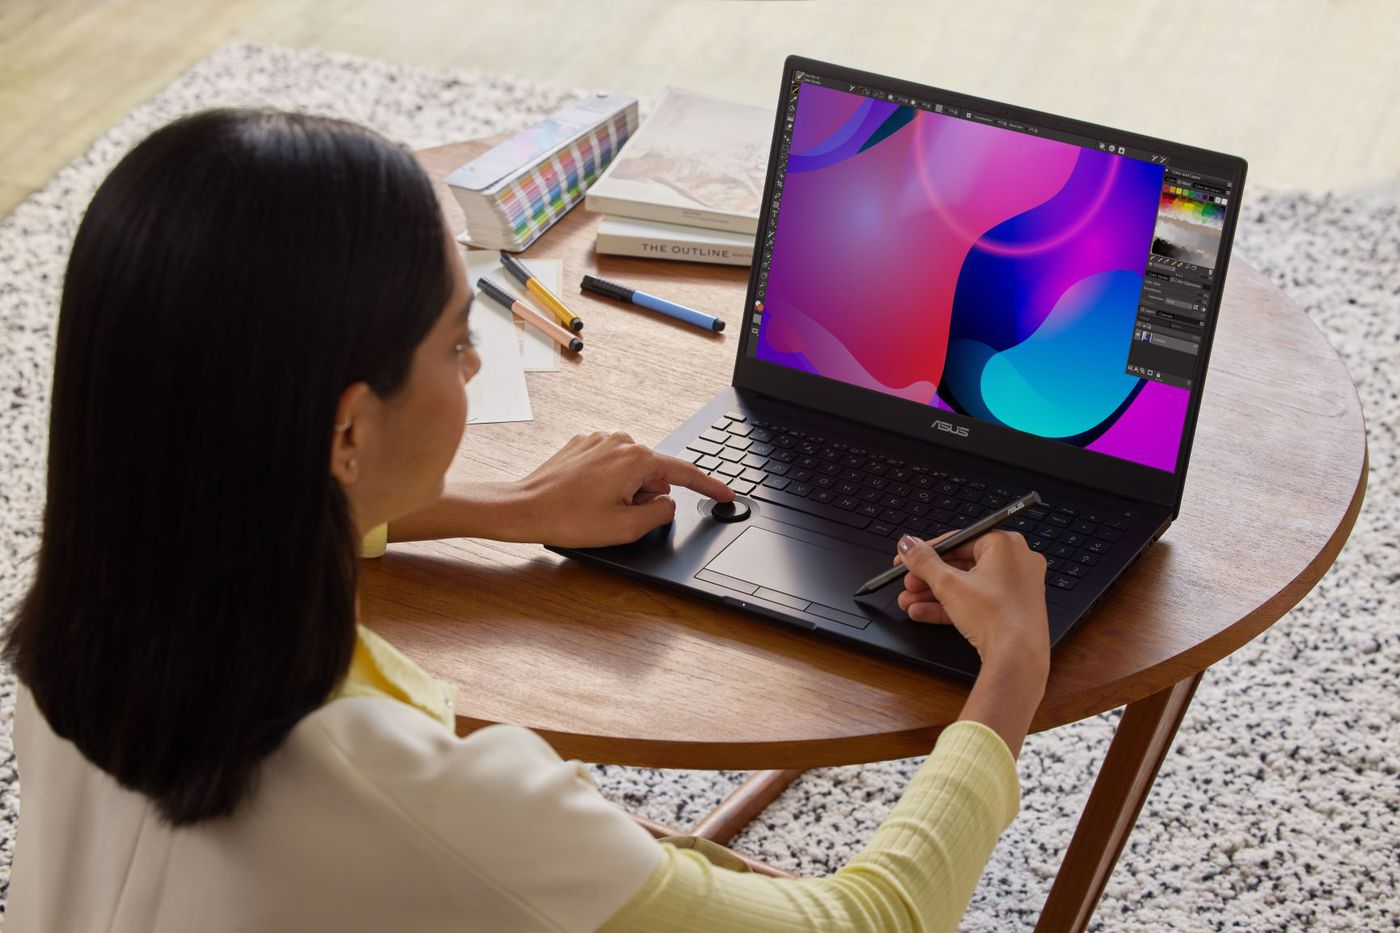 Samsung began mass production of the 90Hz OLED laptop screen